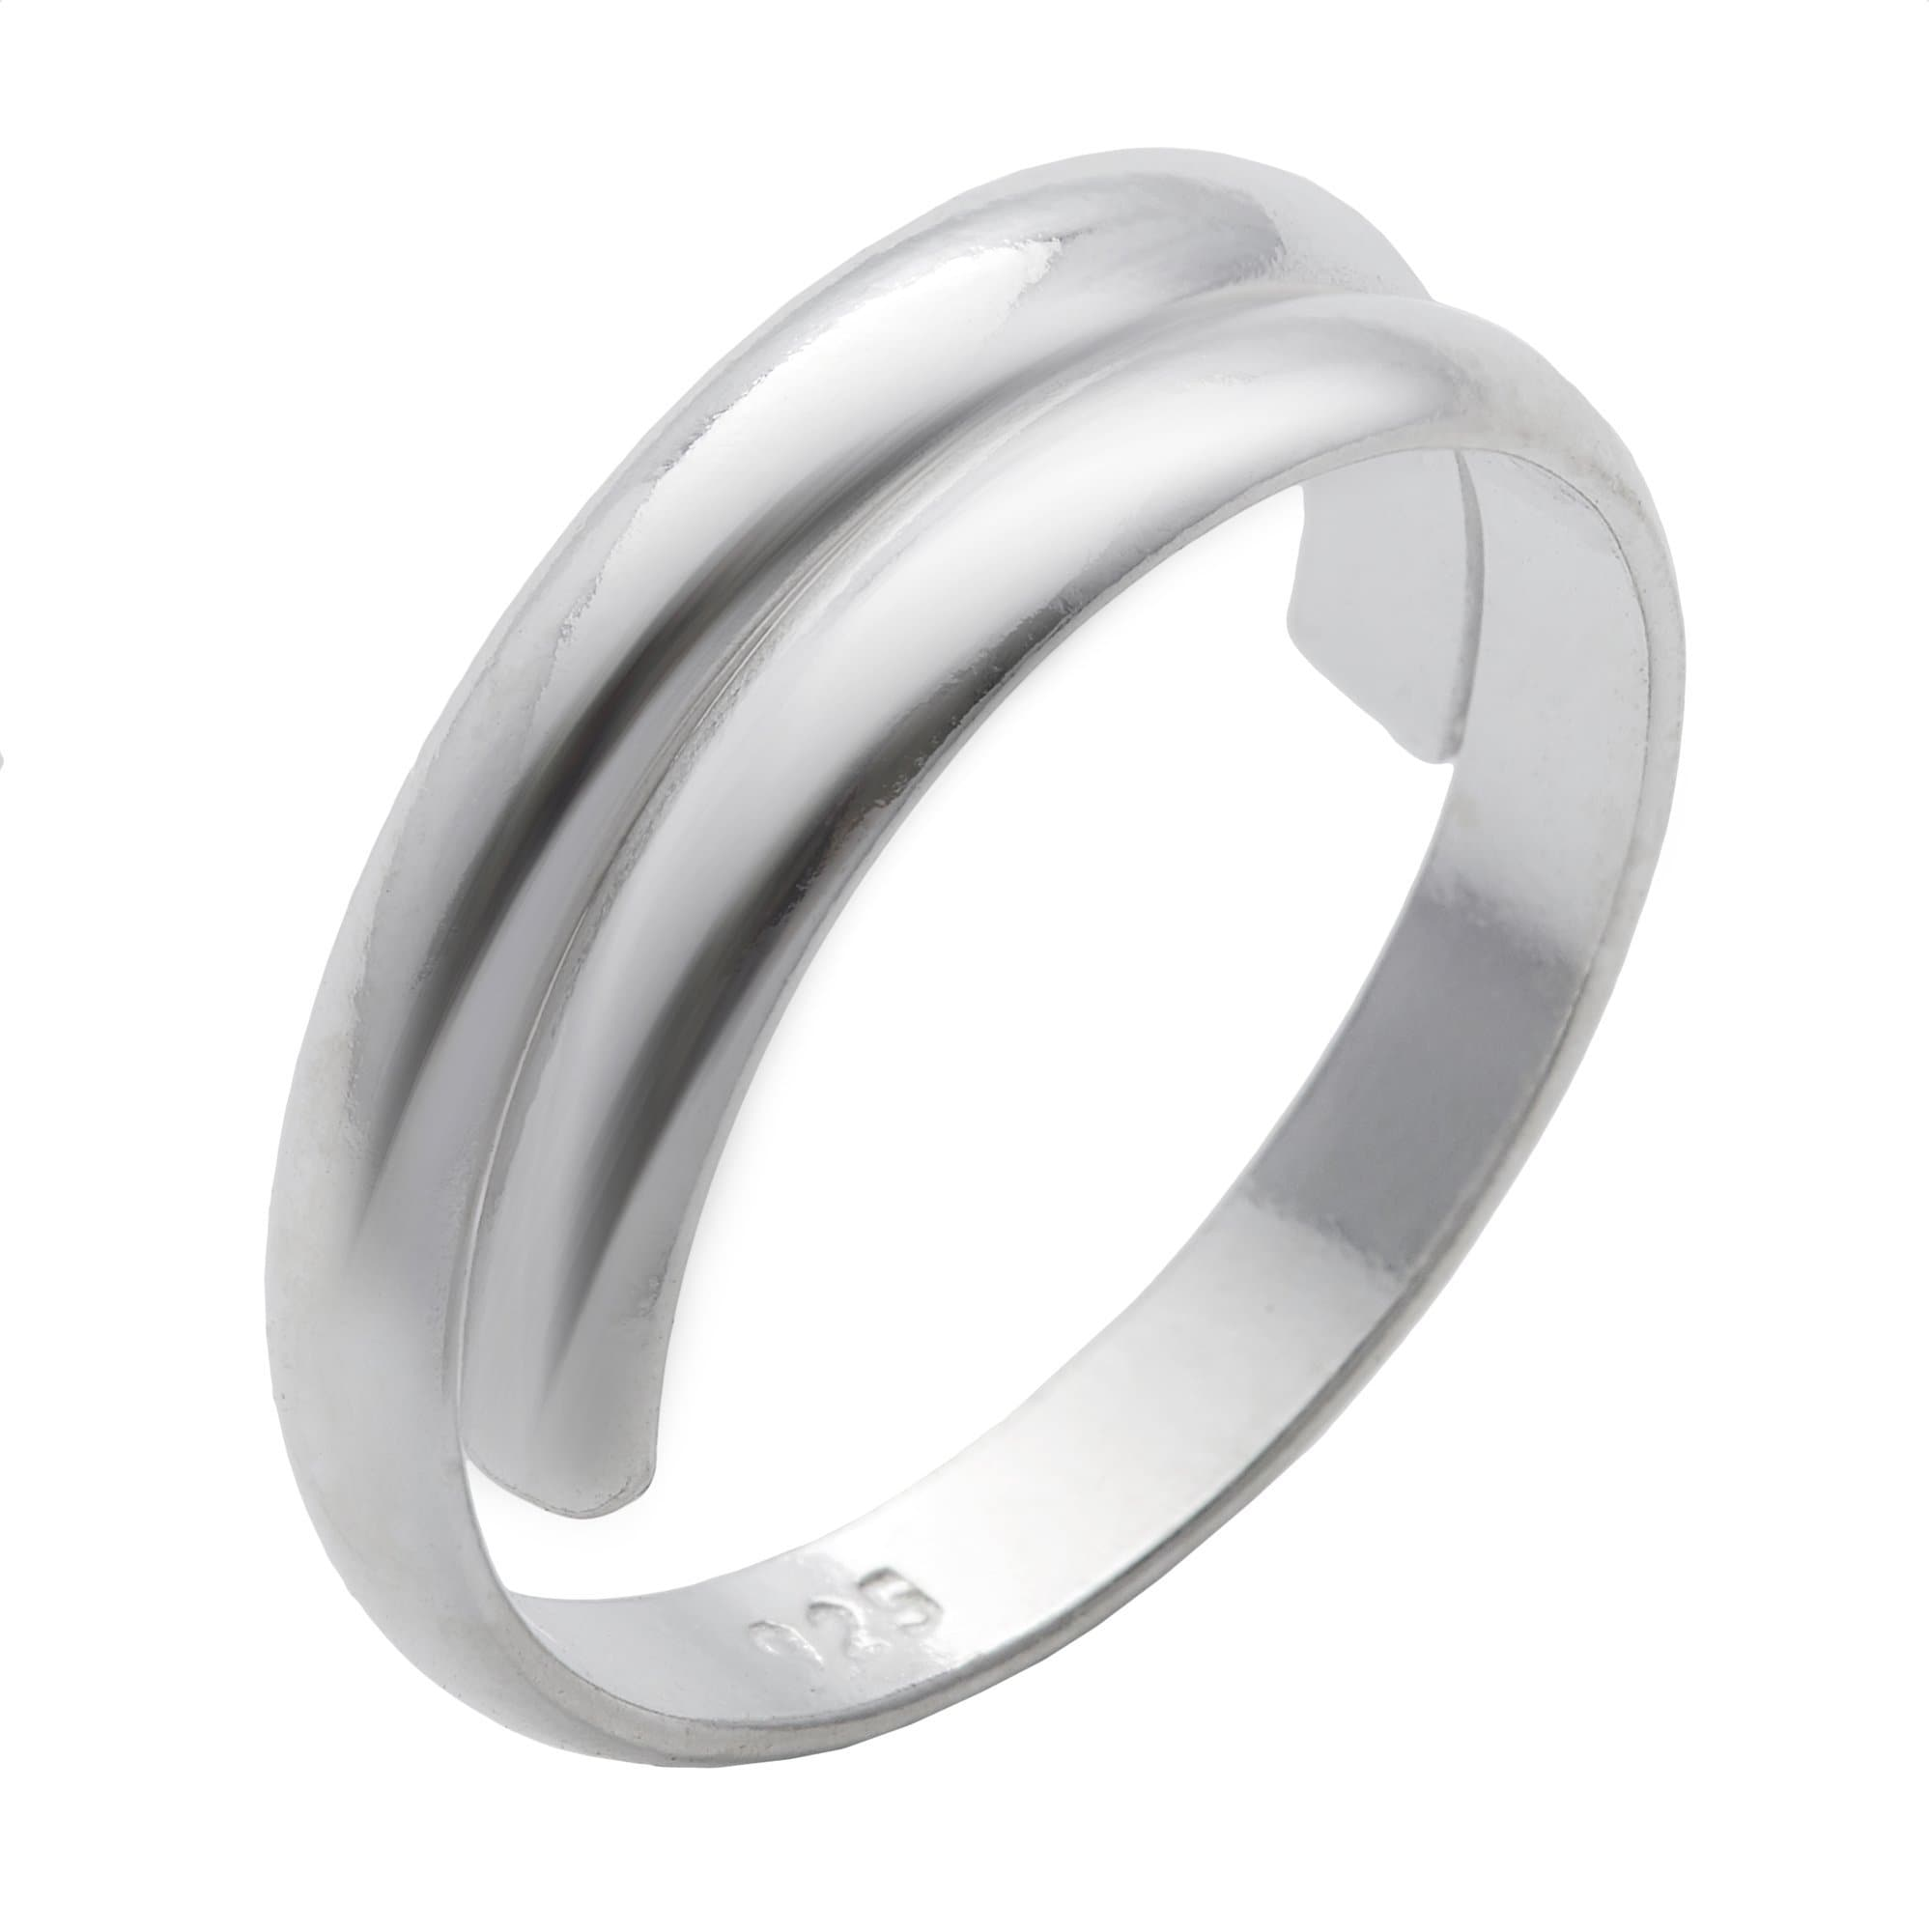 0659de72f147f Sterling Silver Overlapping Plain Adjustable Toe Ring